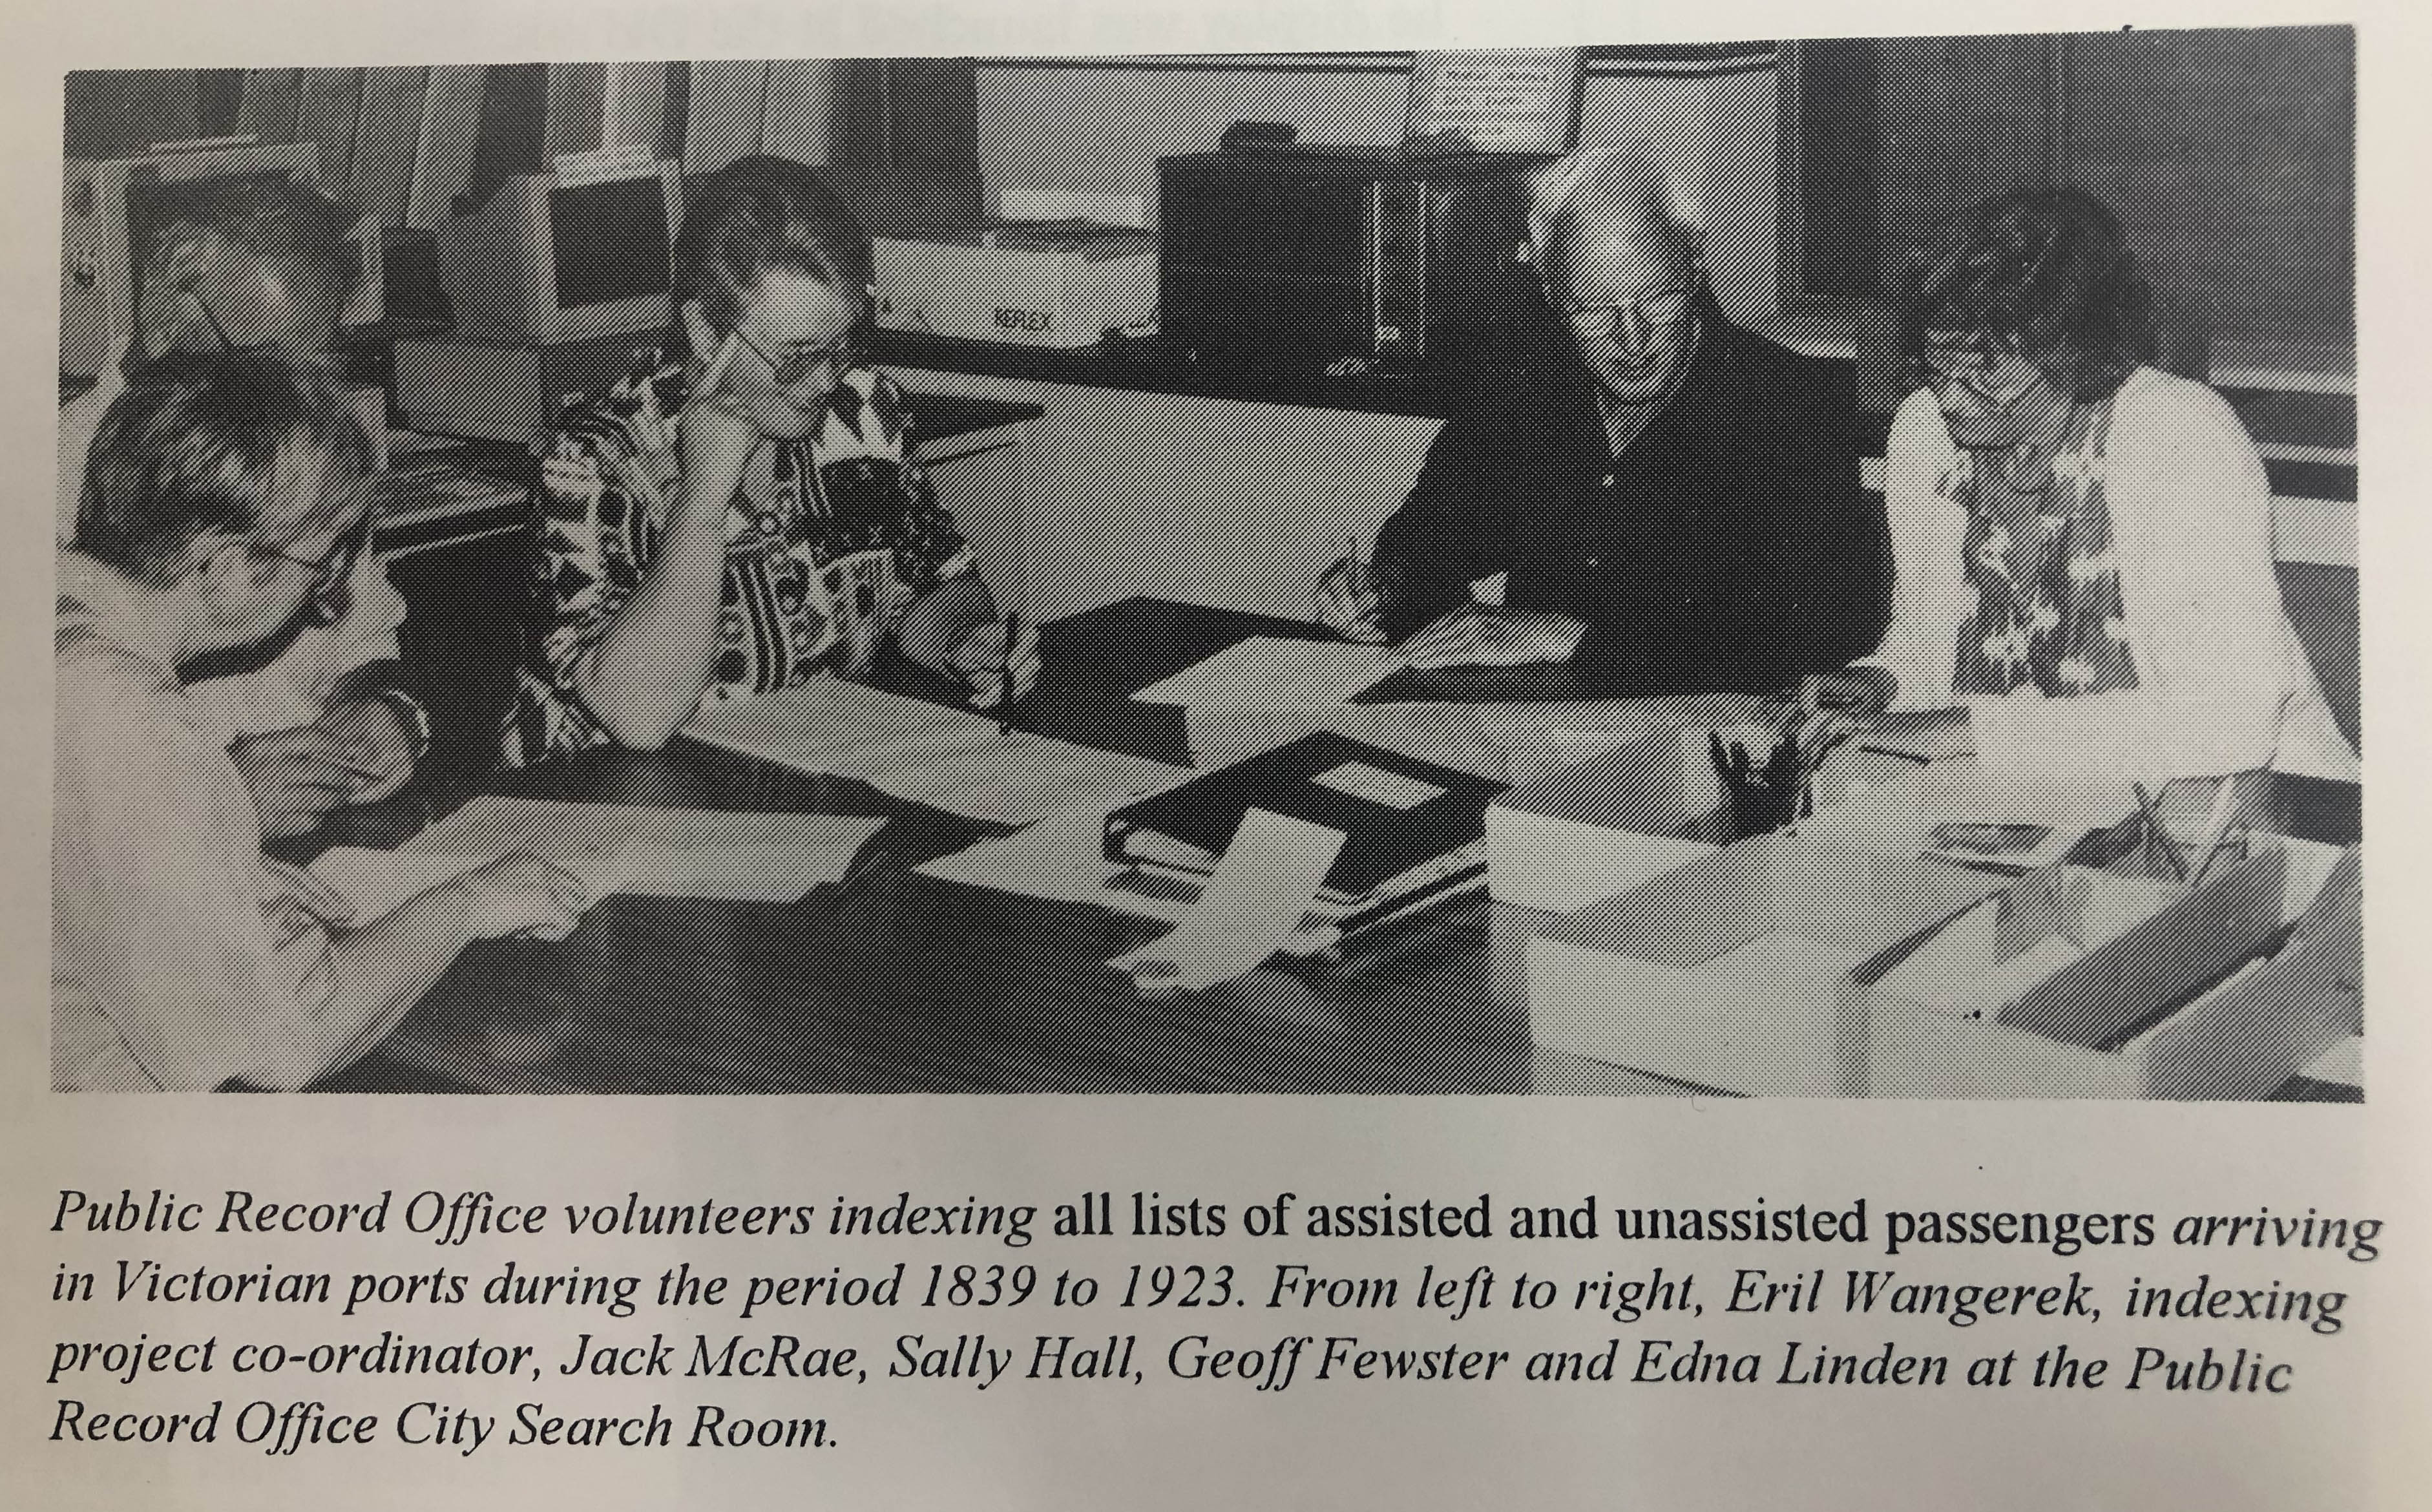 black and white photo of volunteers at a desk looking over documents